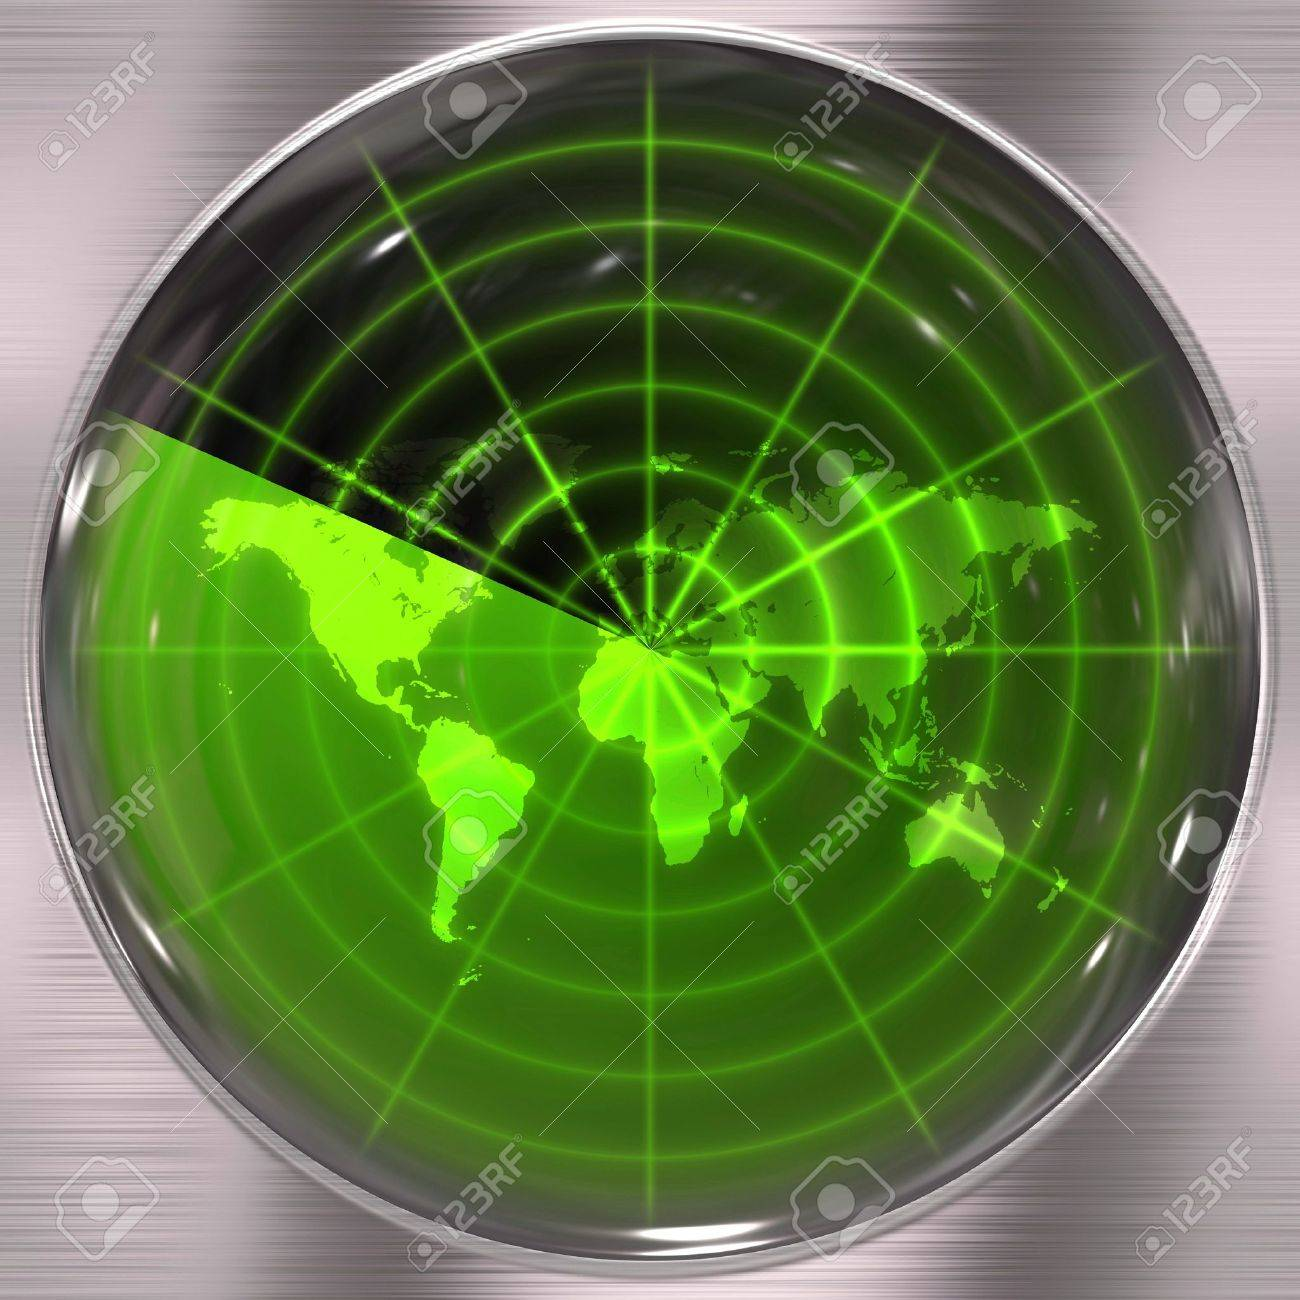 The world map in a radar screen - blips can be added easily anywhere they are needed. Stock Photo - 5516351